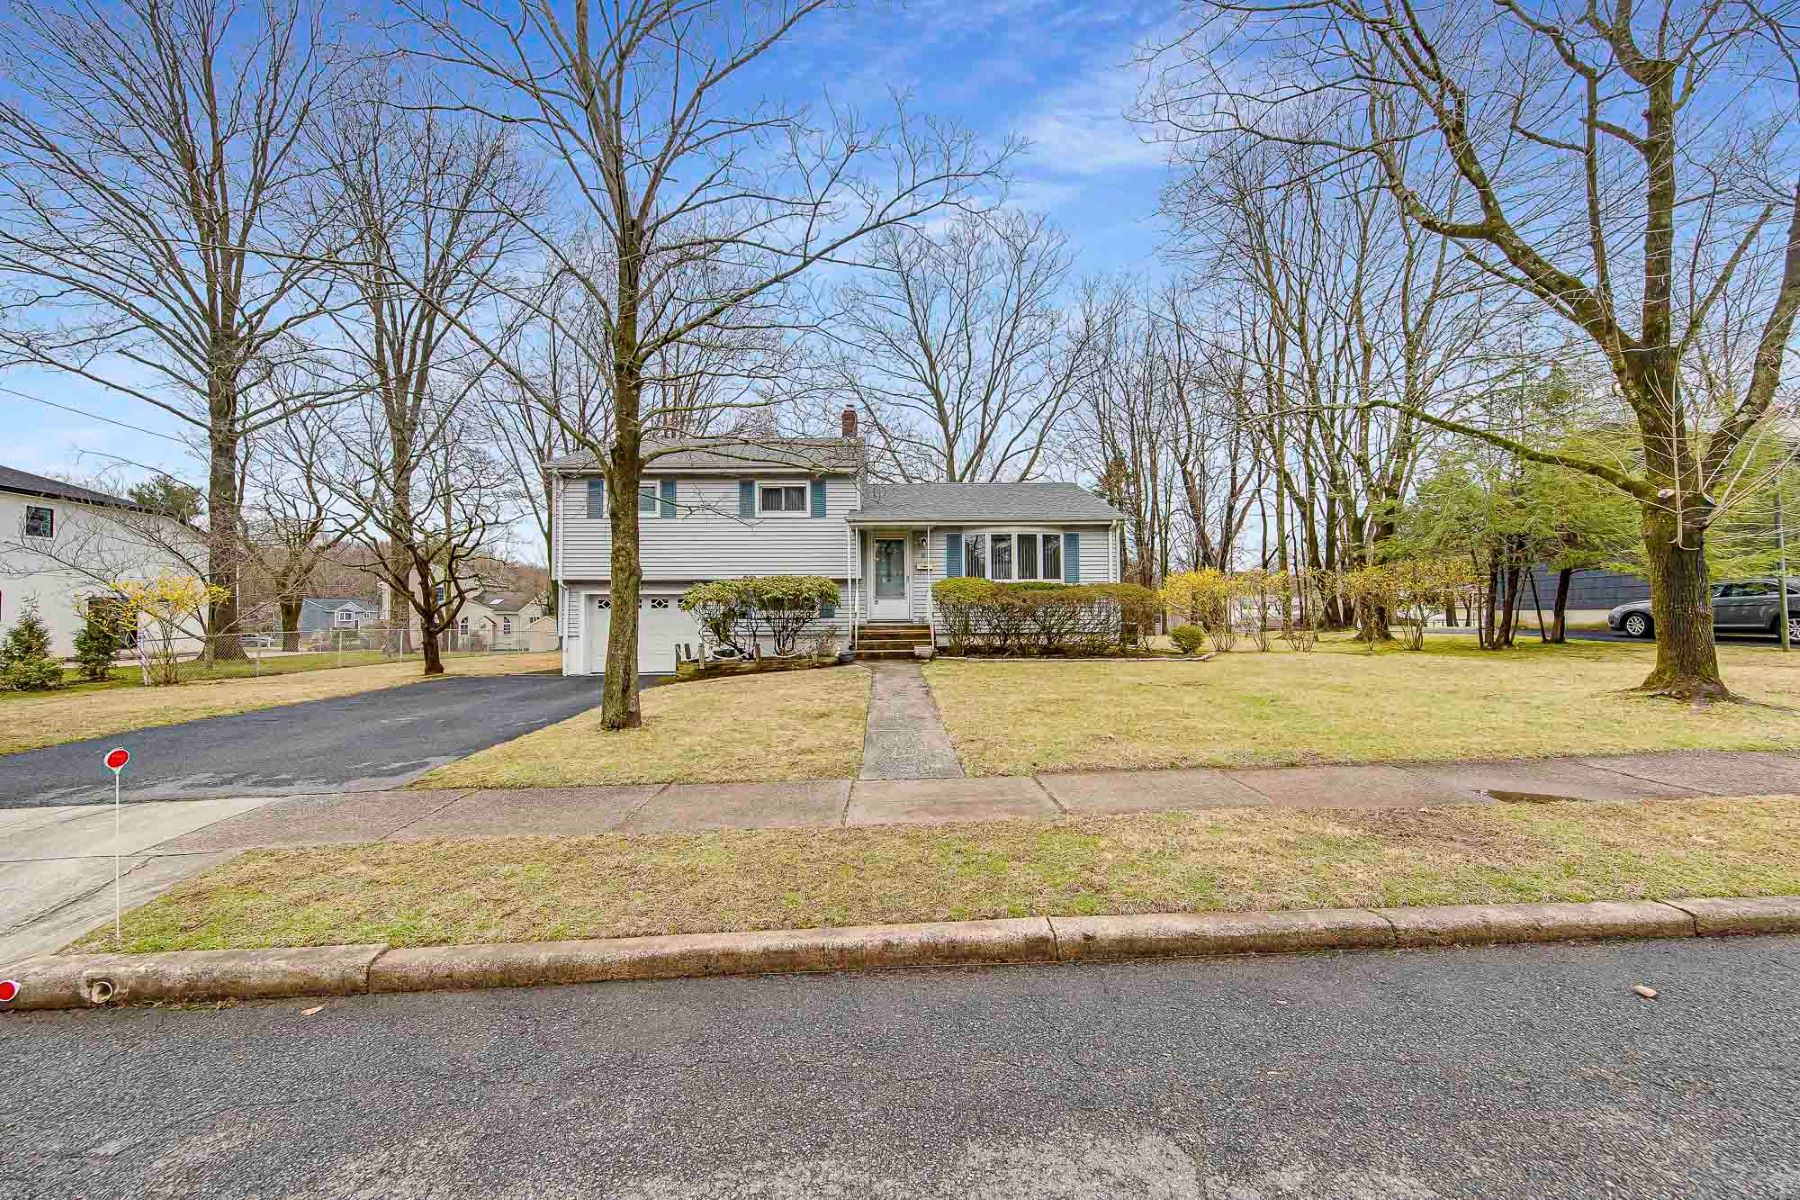 Single Family Homes for Sale at Great Opportunity! 15 Rose Ct, Closter, New Jersey 07624 United States